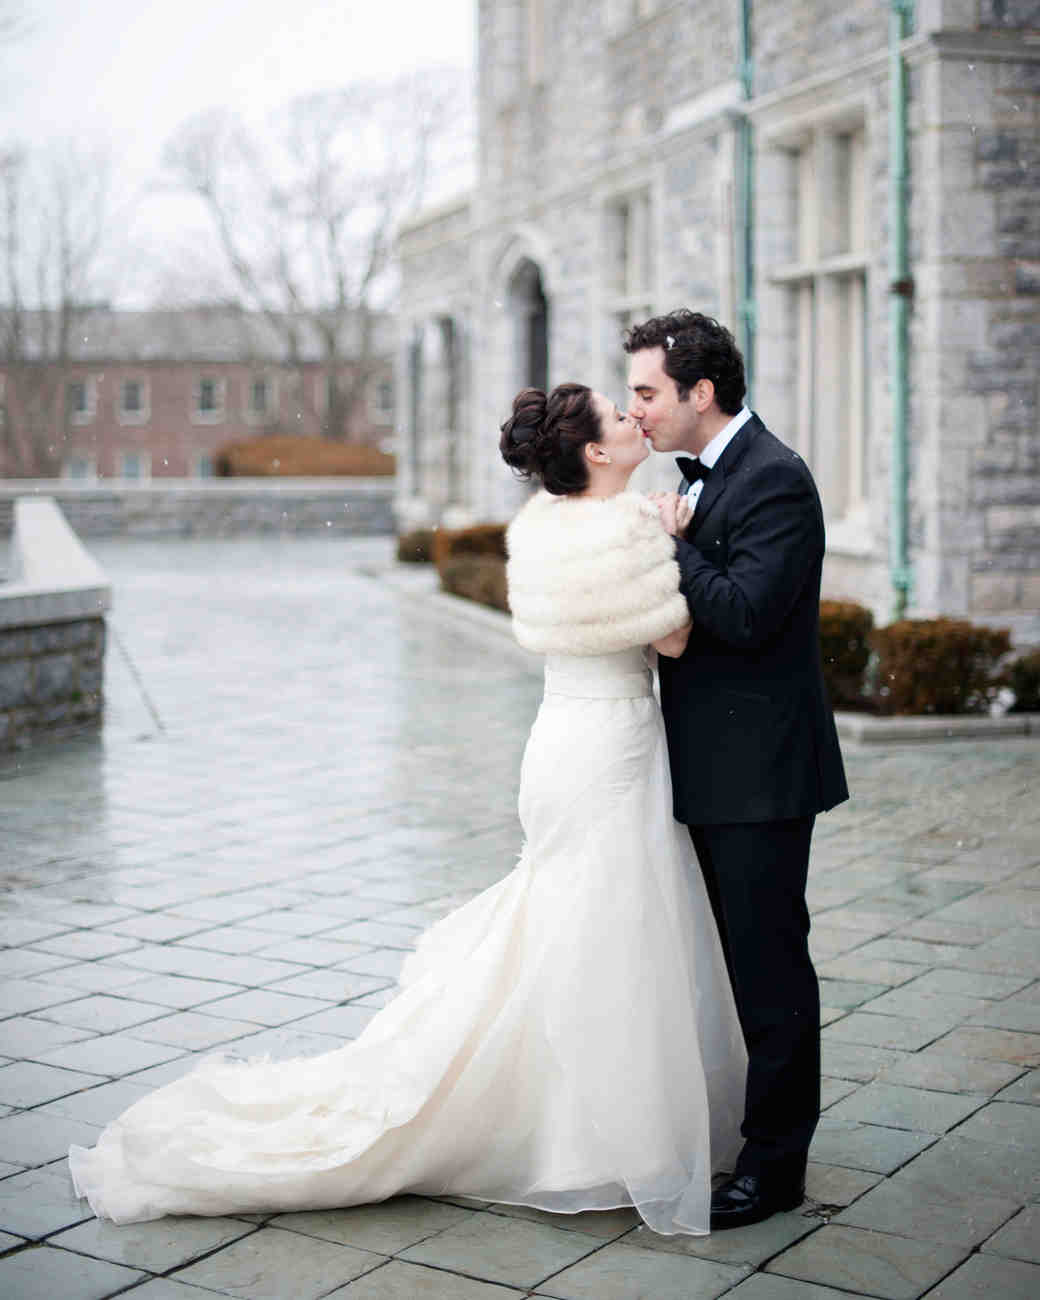 An Intimate, Formal Winter Wedding In Connecticut